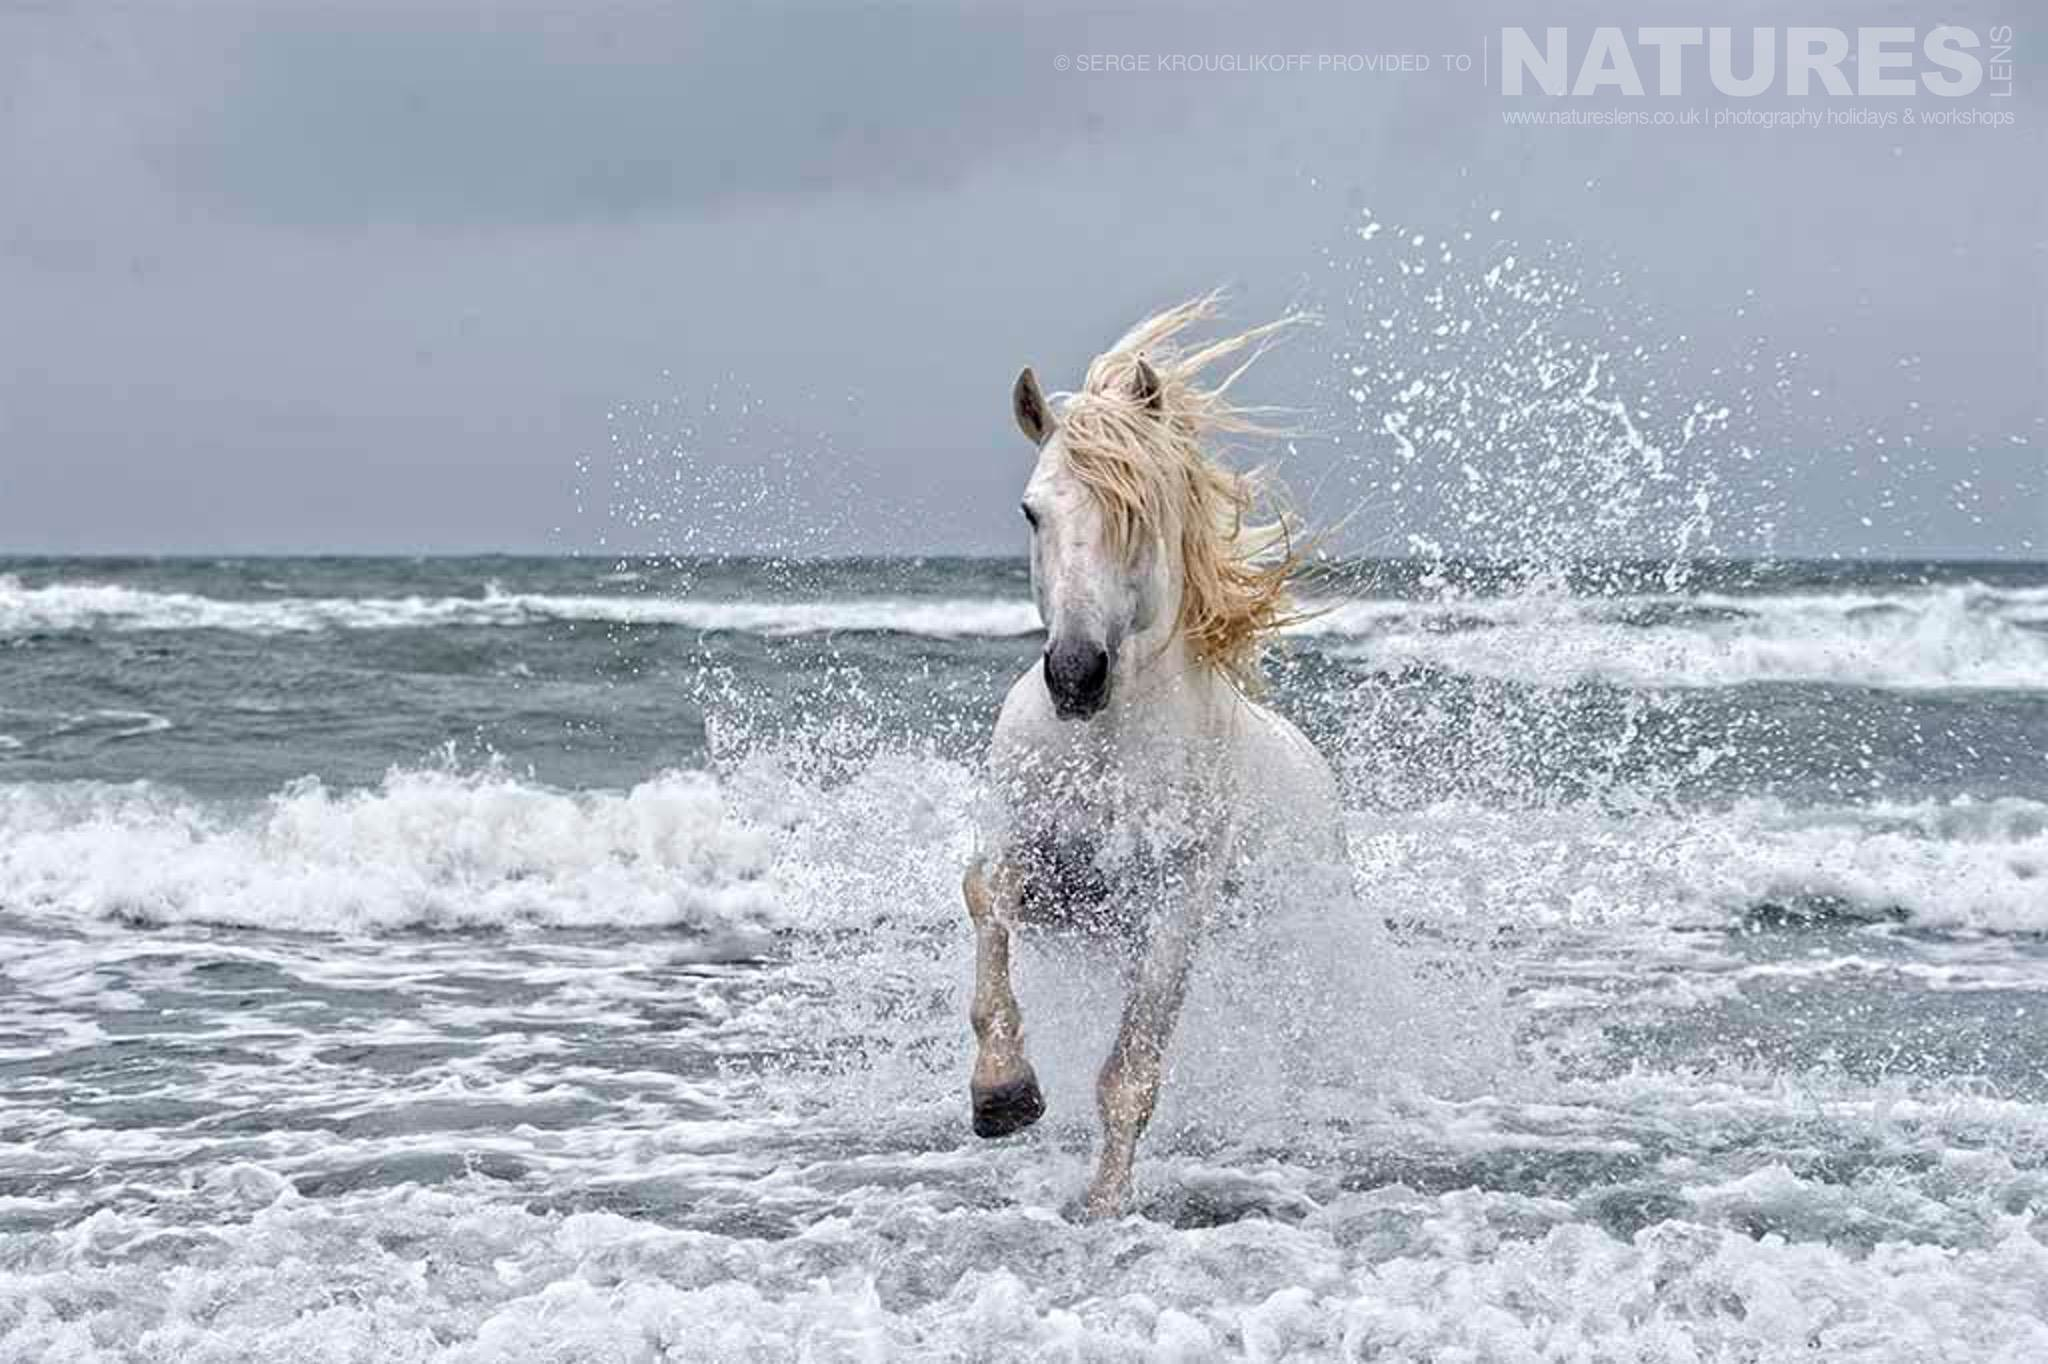 A white stallion walking through the surf typical of the type of image that may be captured during the NaturesLens Wild White Horses of the Camargue Photography Holiday